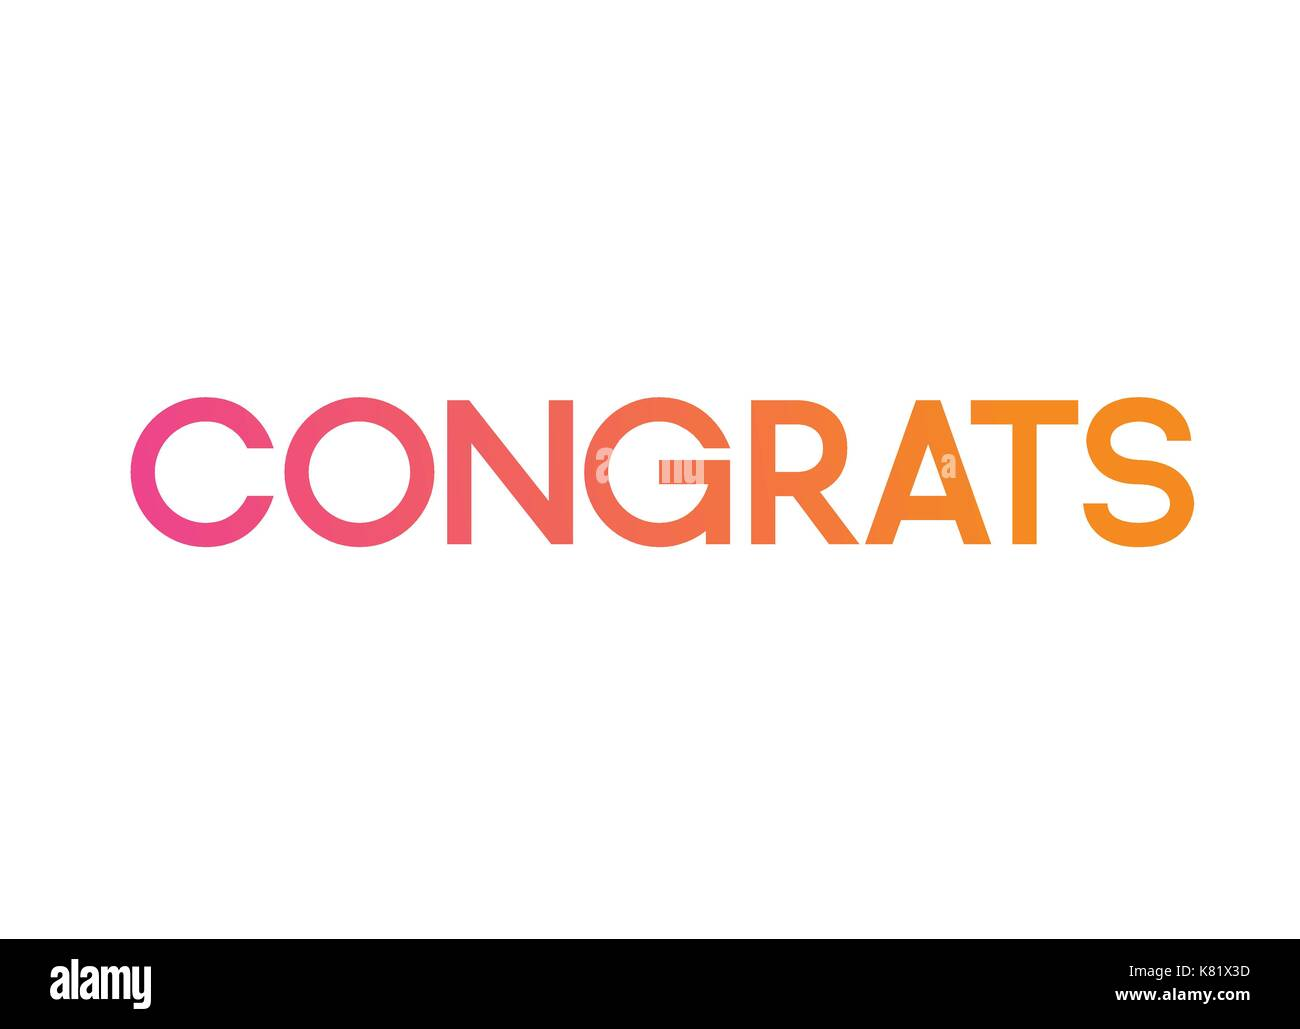 the gradient pink to orange isolated standard font word congrats